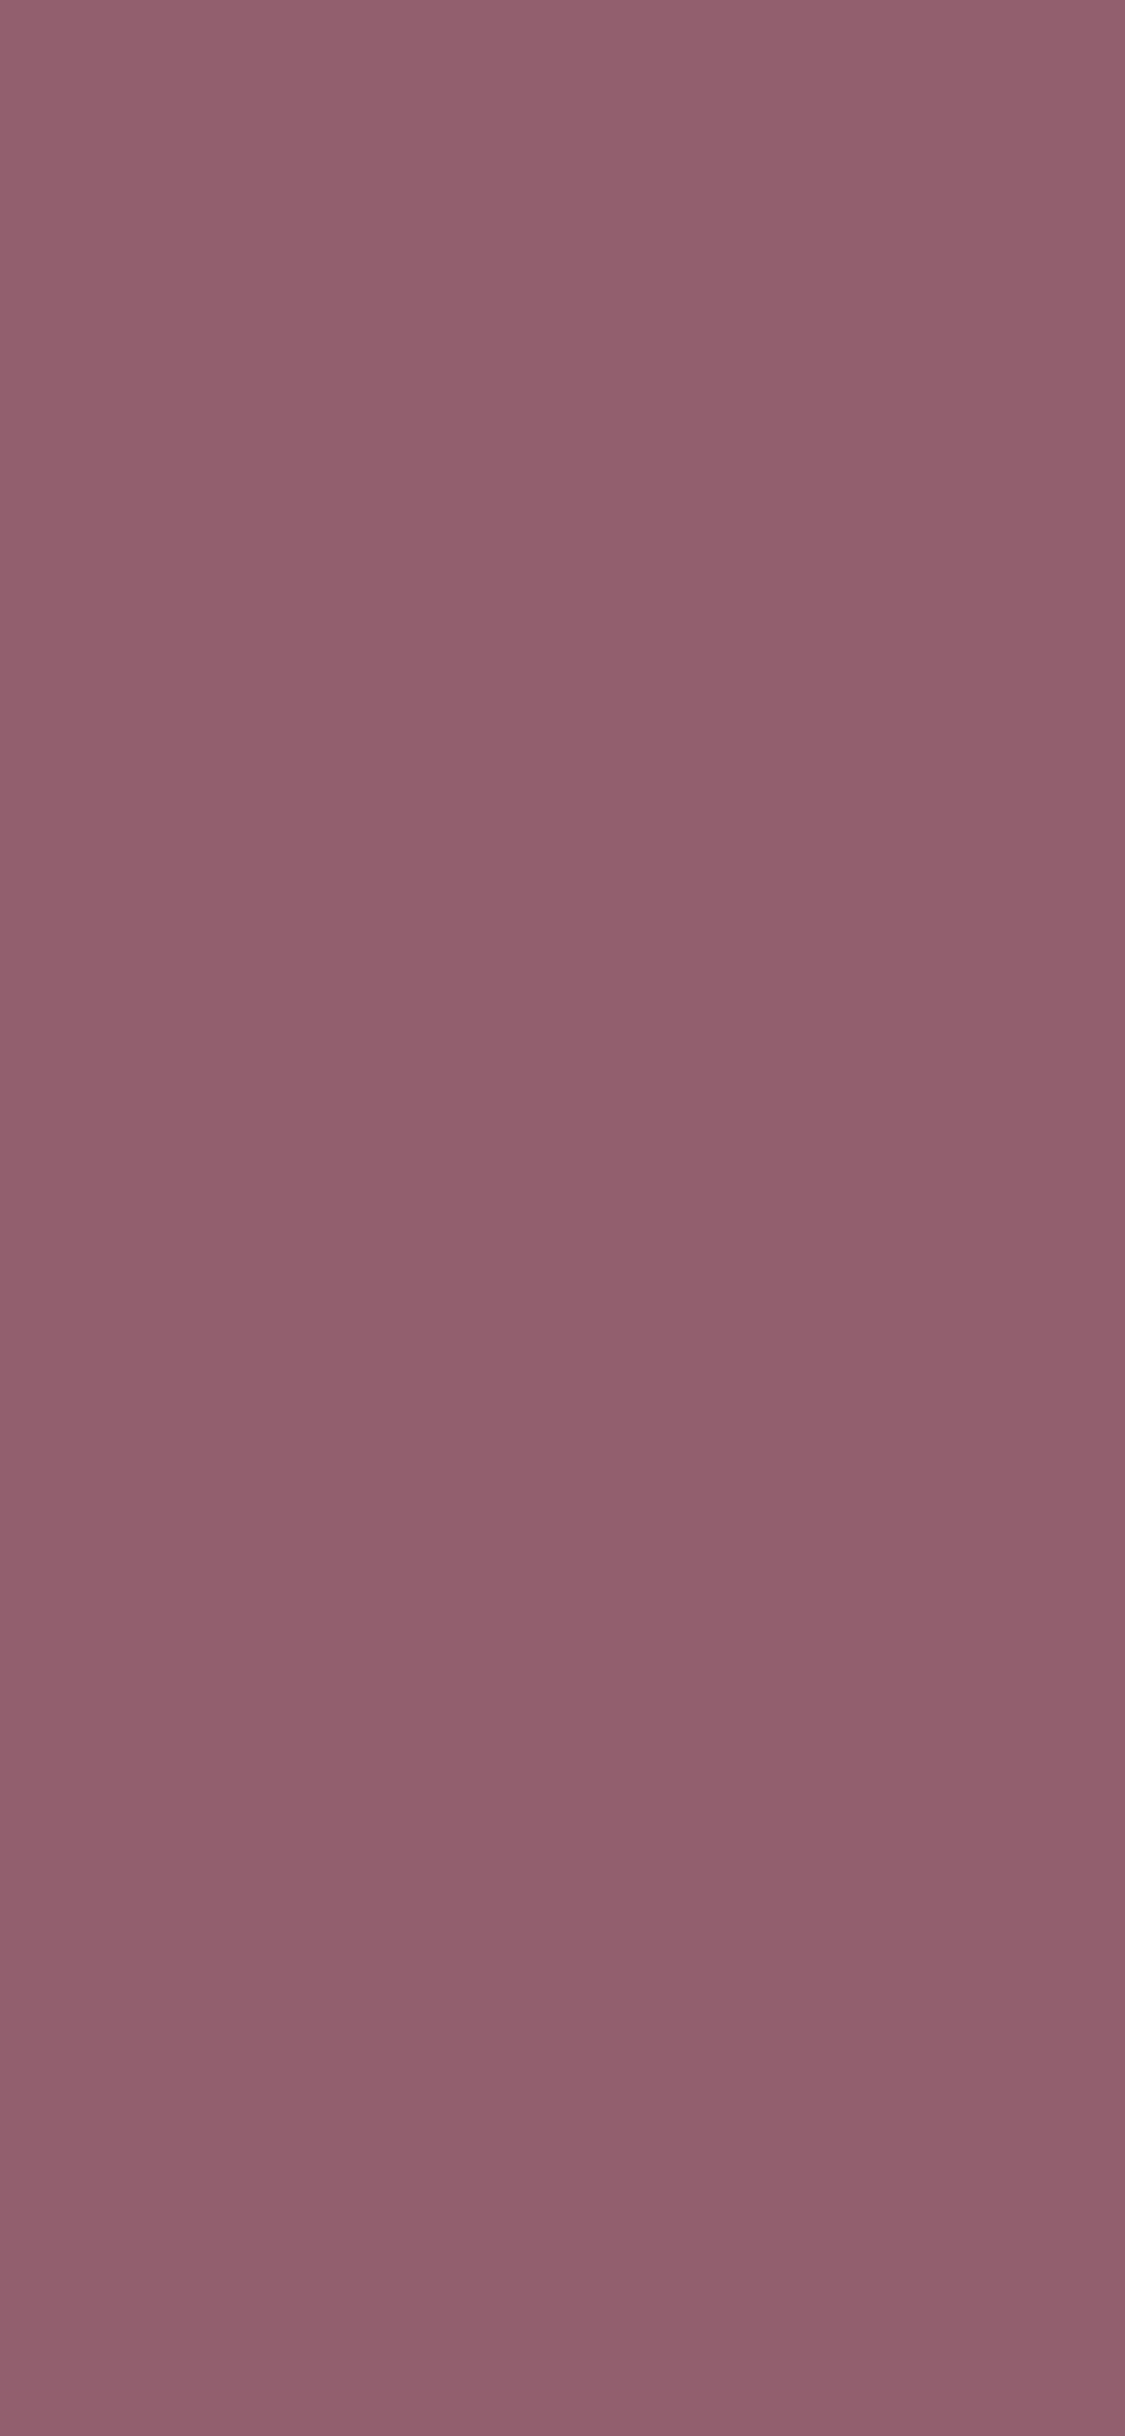 1125x2436 Raspberry Glace Solid Color Background